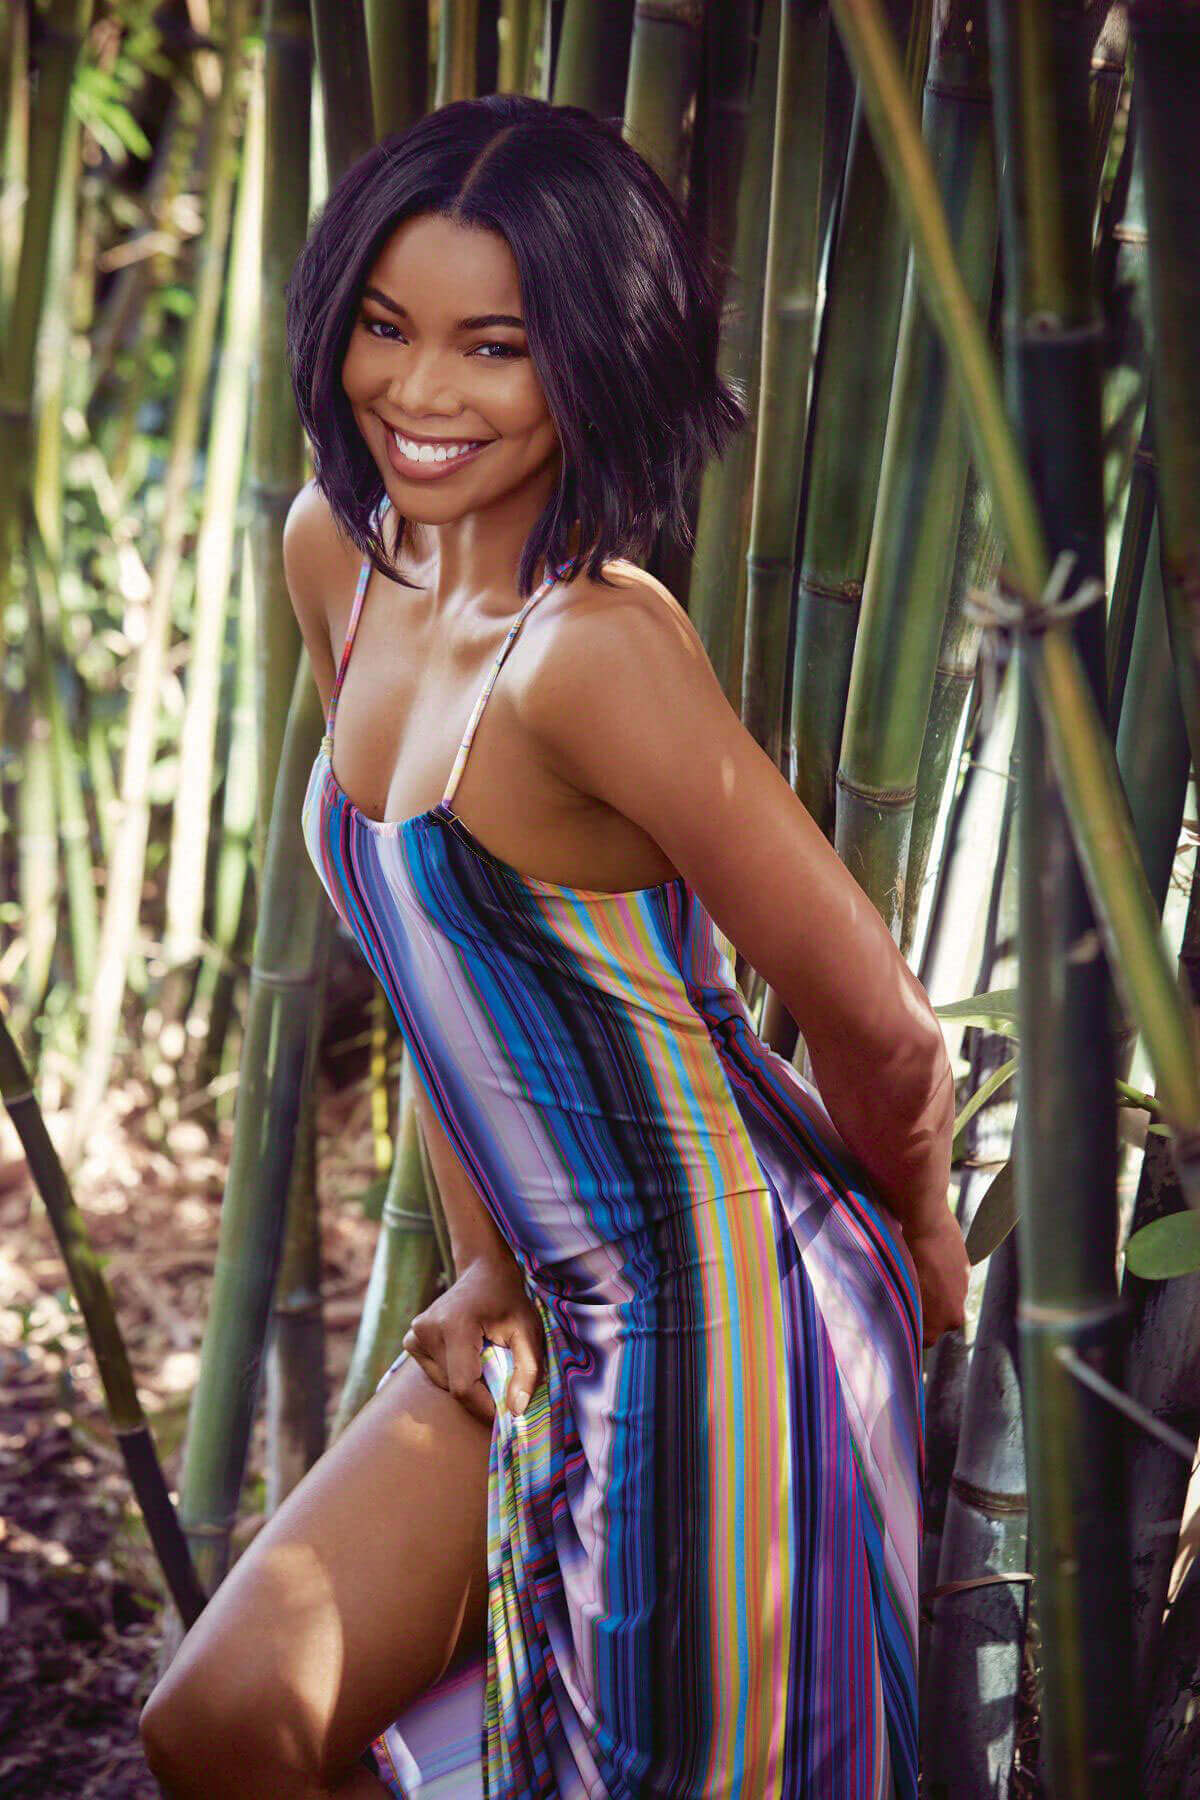 Gabrielle Union Poses for Health Magazine, August 2017